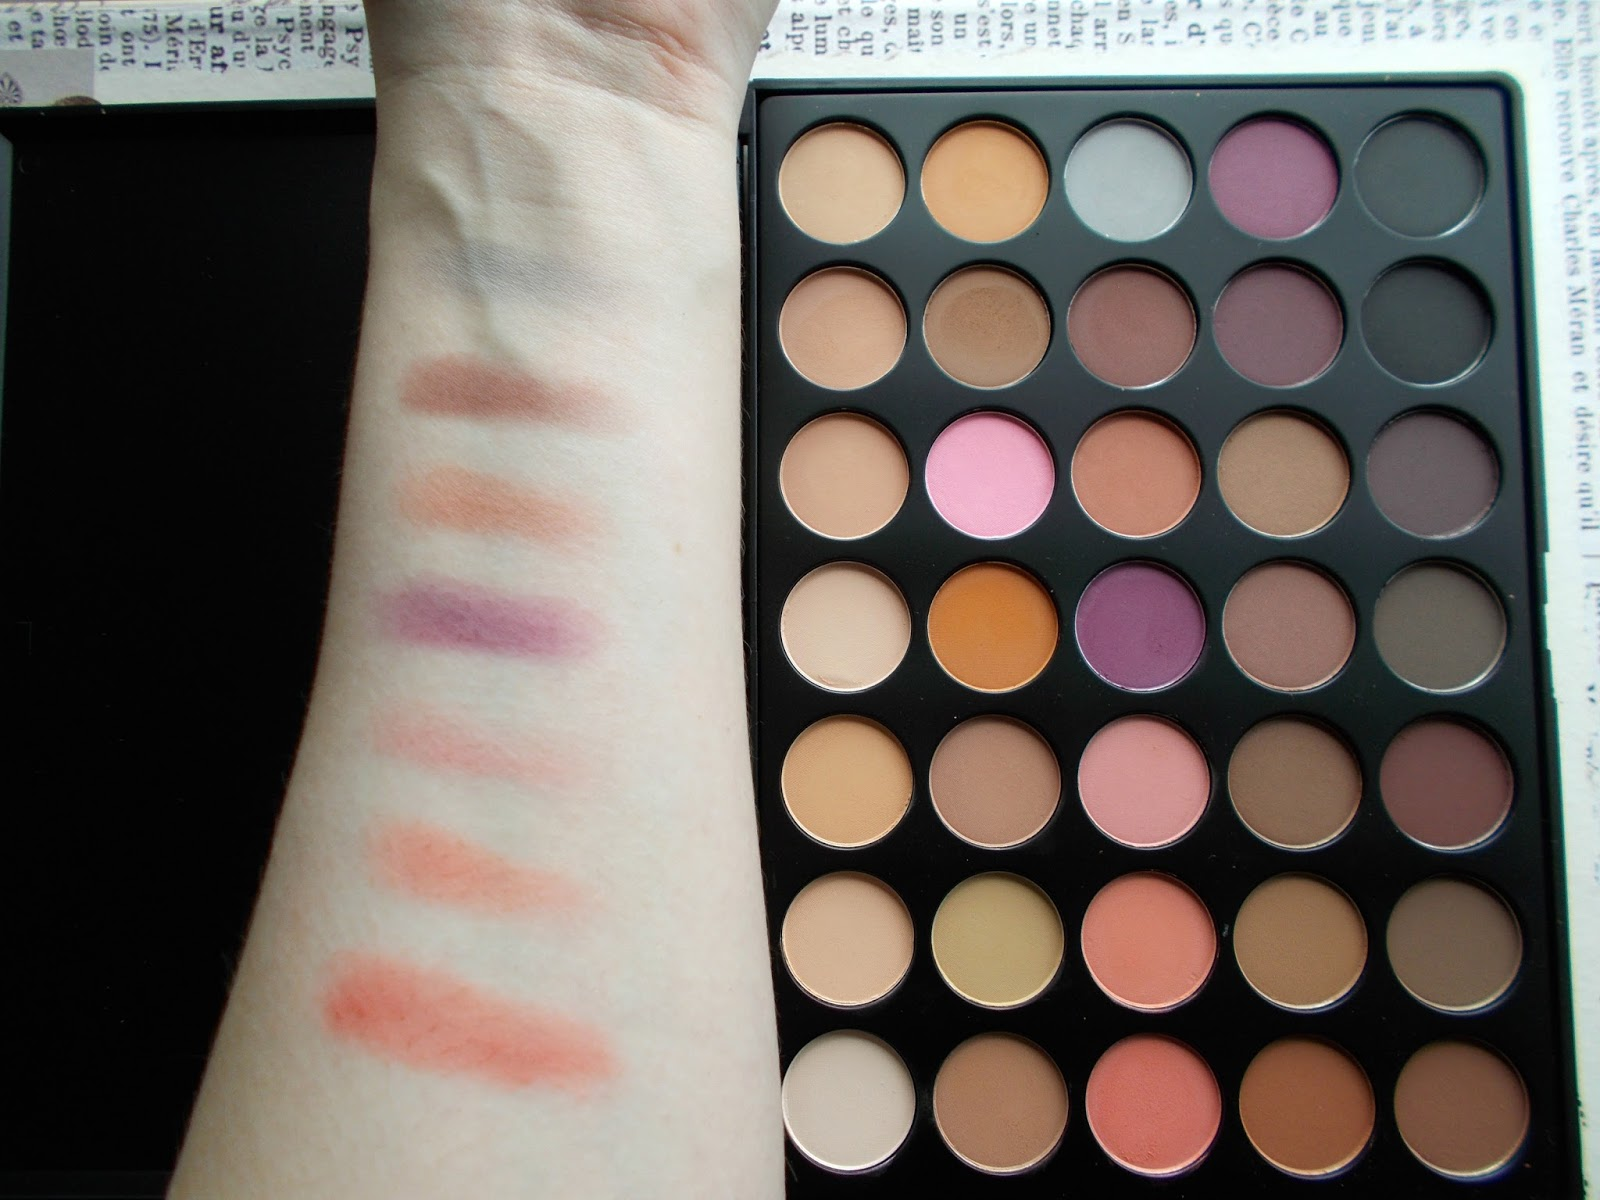 Morphe Brushes BeautyBay review 35N colour matte palette 3rd row swatches